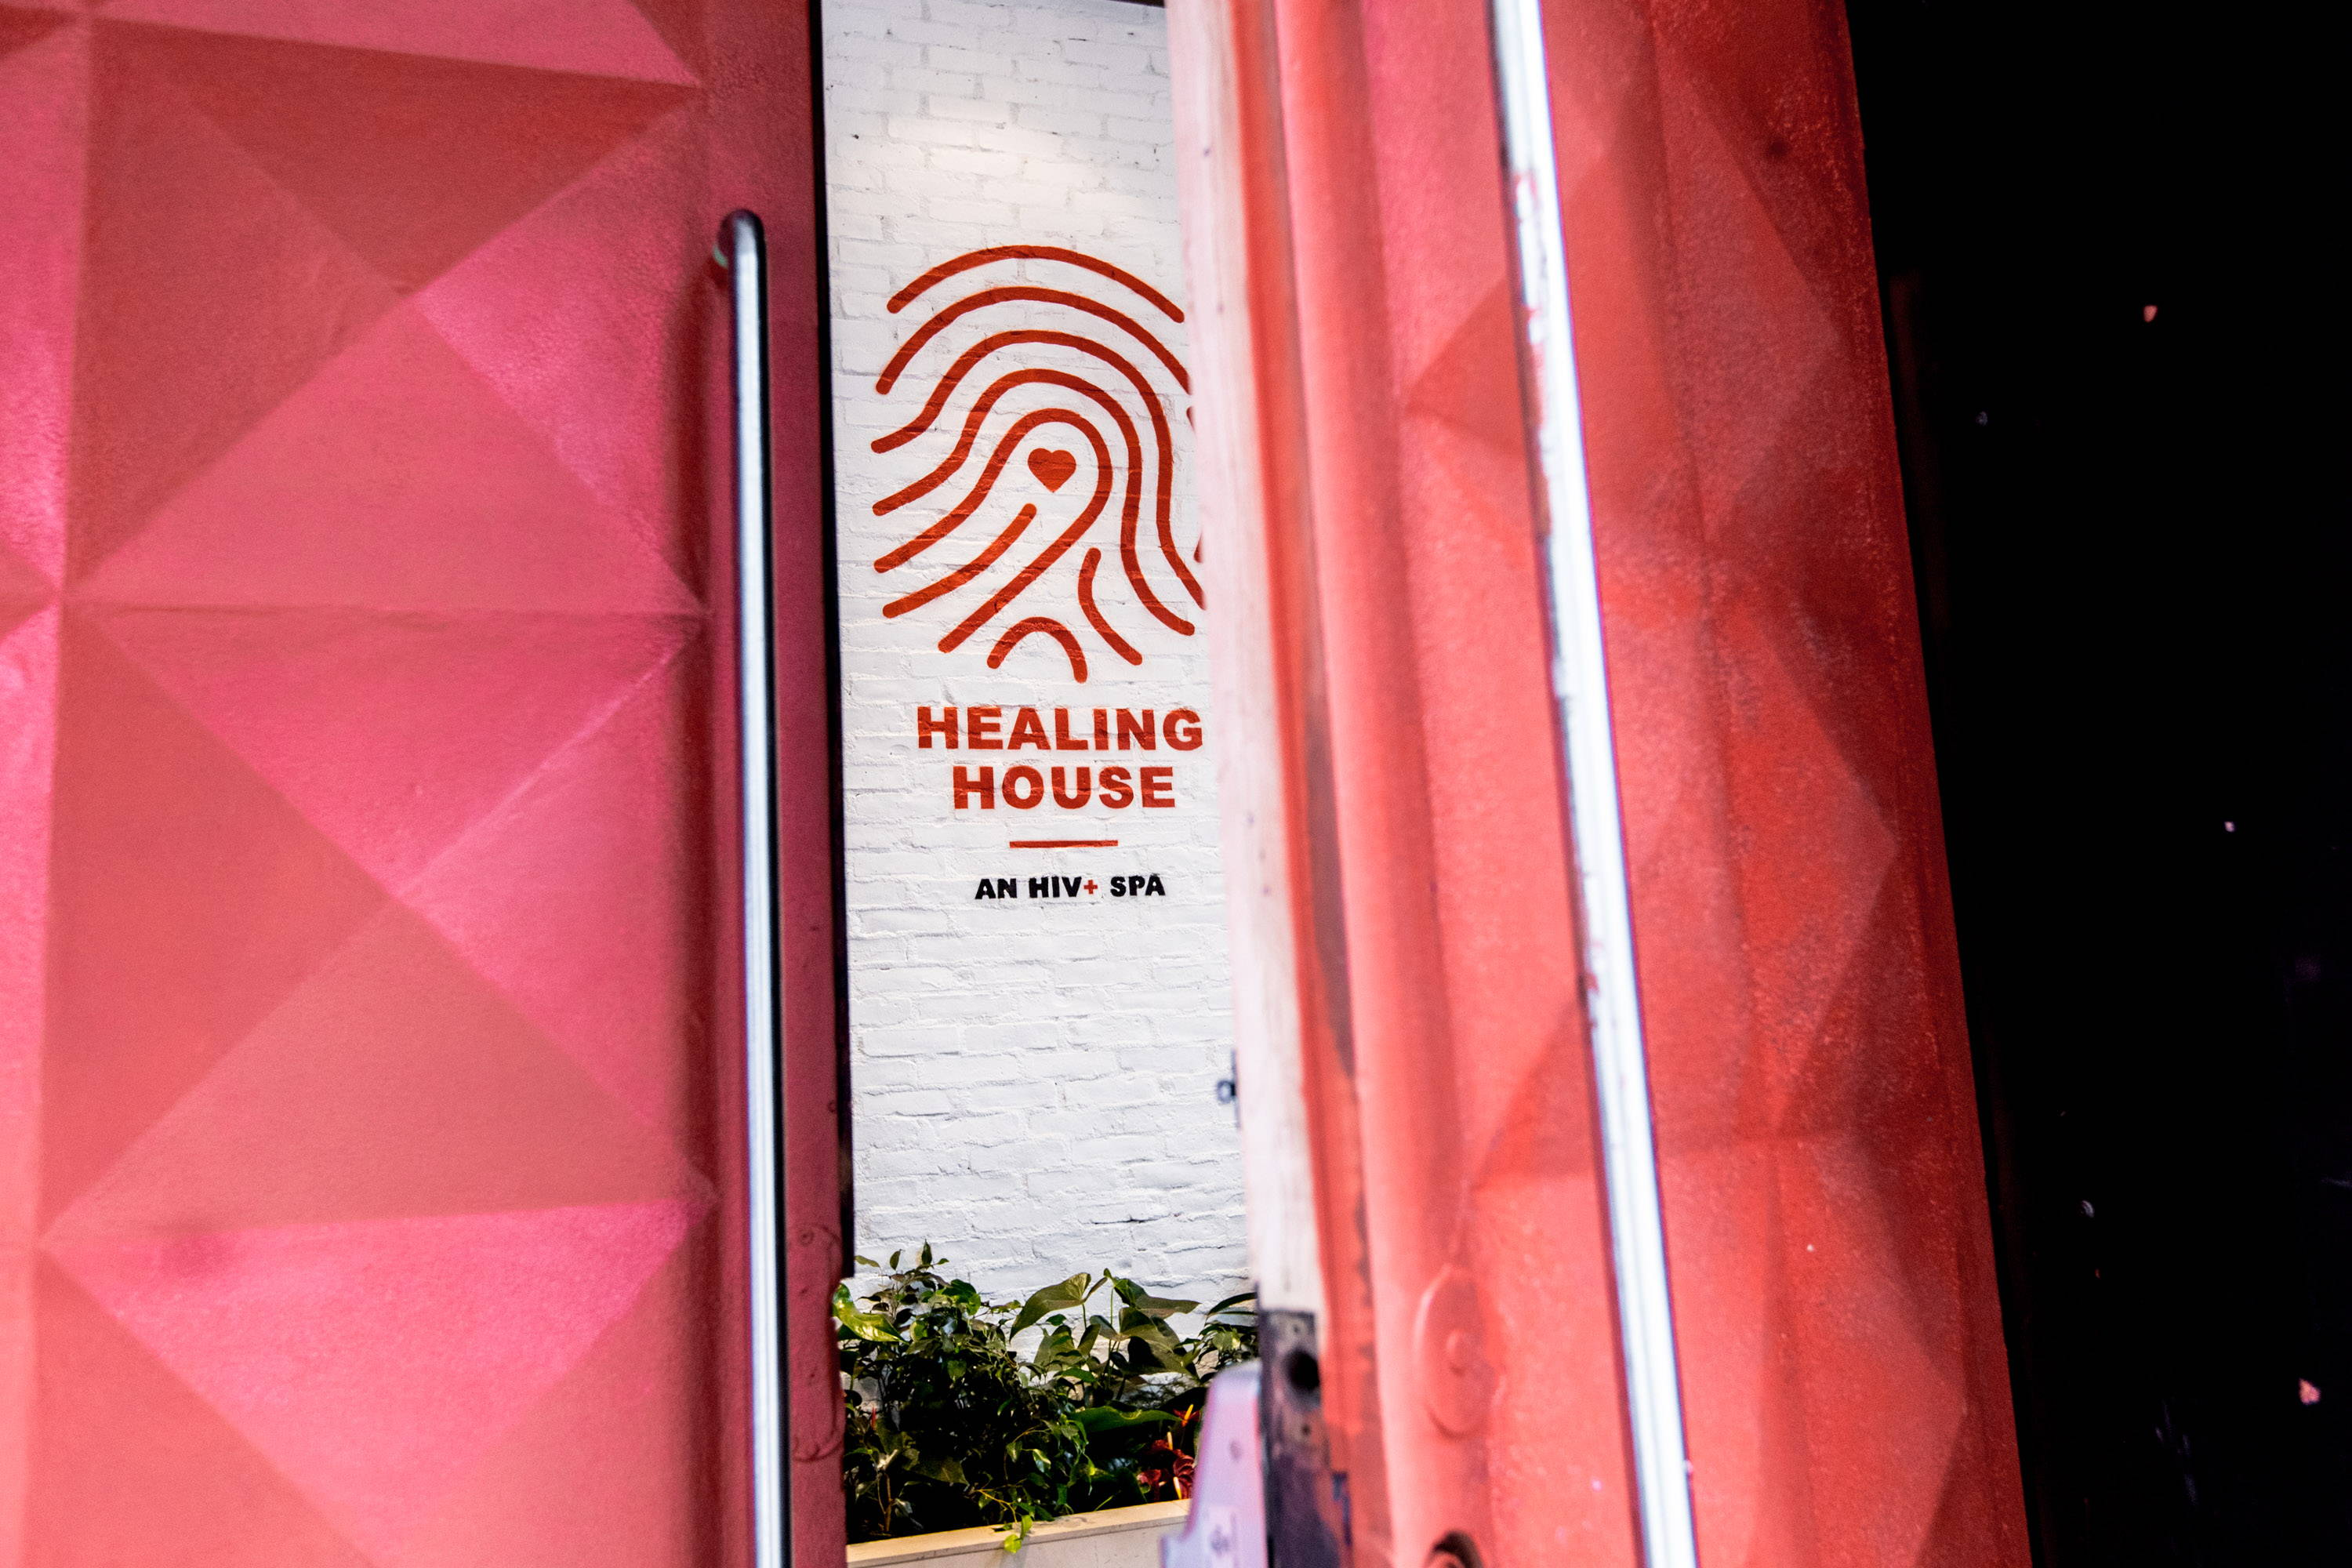 healing house, an HIV+ Spa logo and text in red on white brick wall in between two red doors